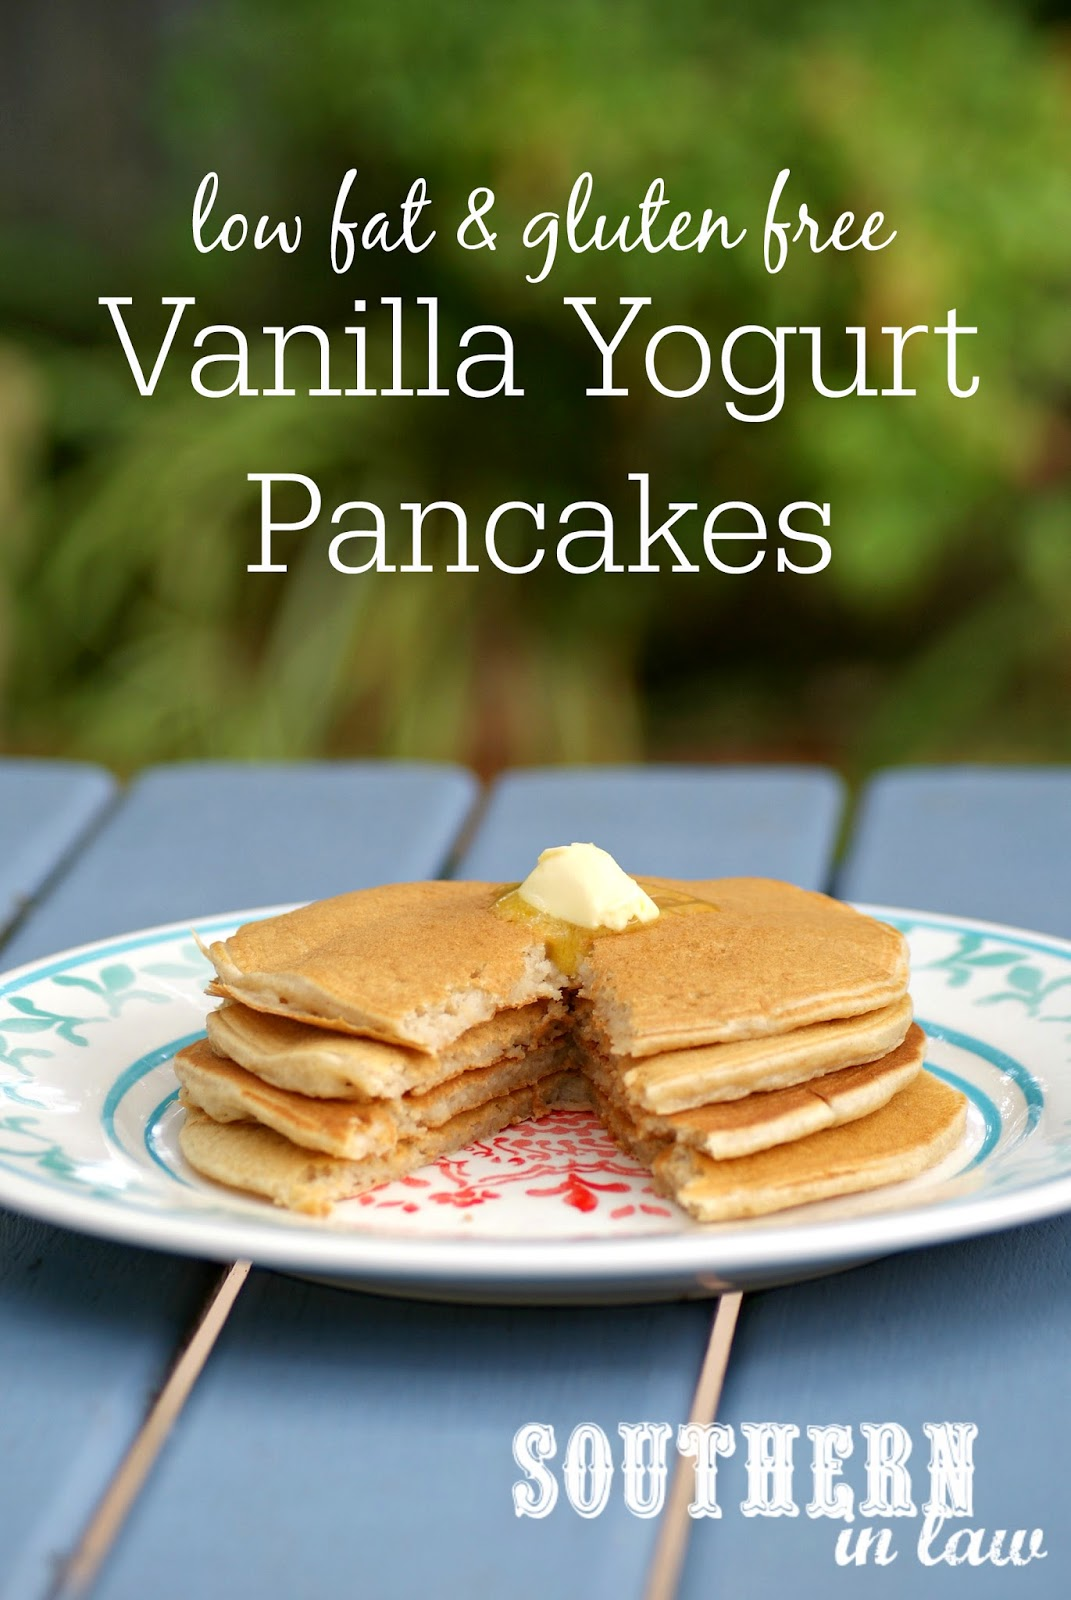 Healthy Vanilla Yogurt Pancakes - Low Fat, Gluten Free, No Added Sugar